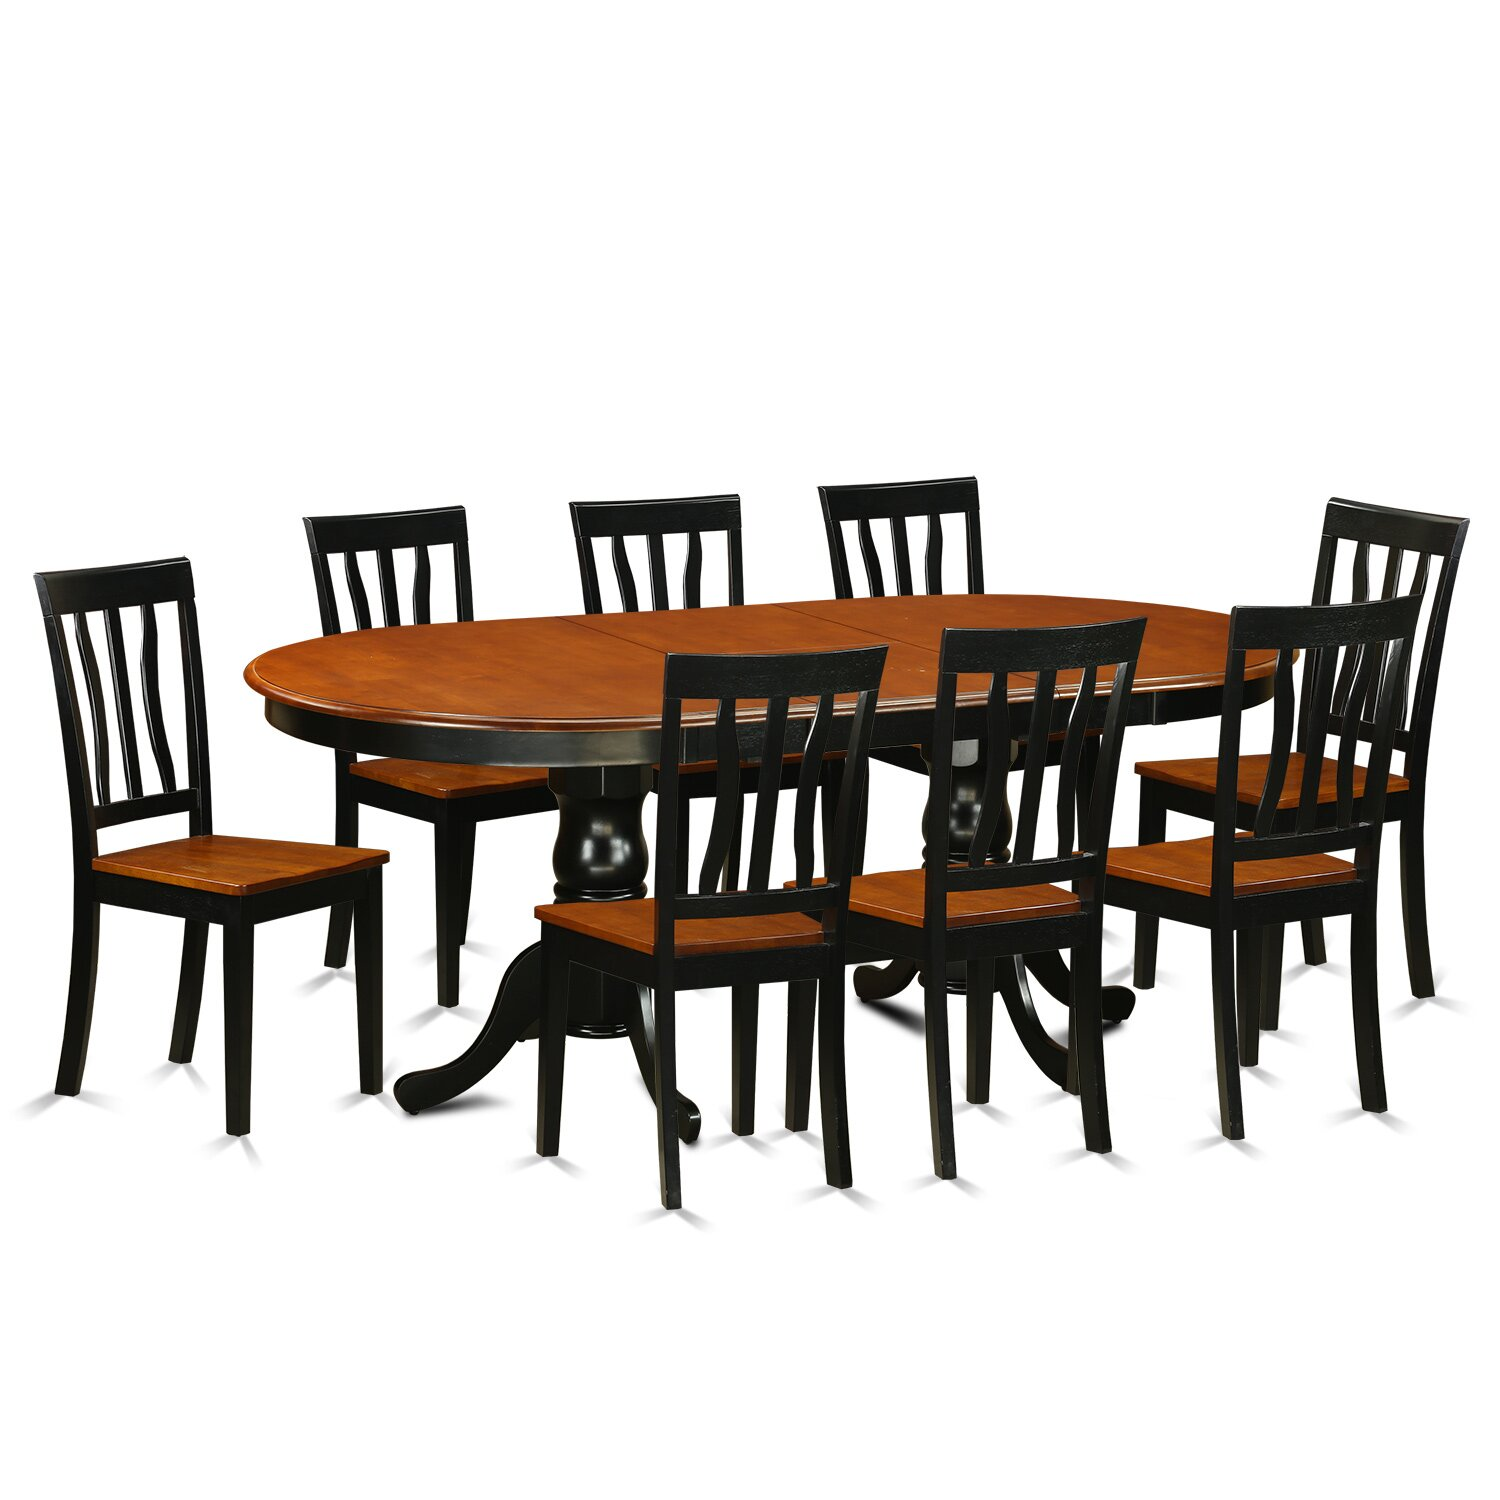 9 Piece Dining Table Set For 8 Dining Room Table With 8: Plainville 9 Piece Dining Set